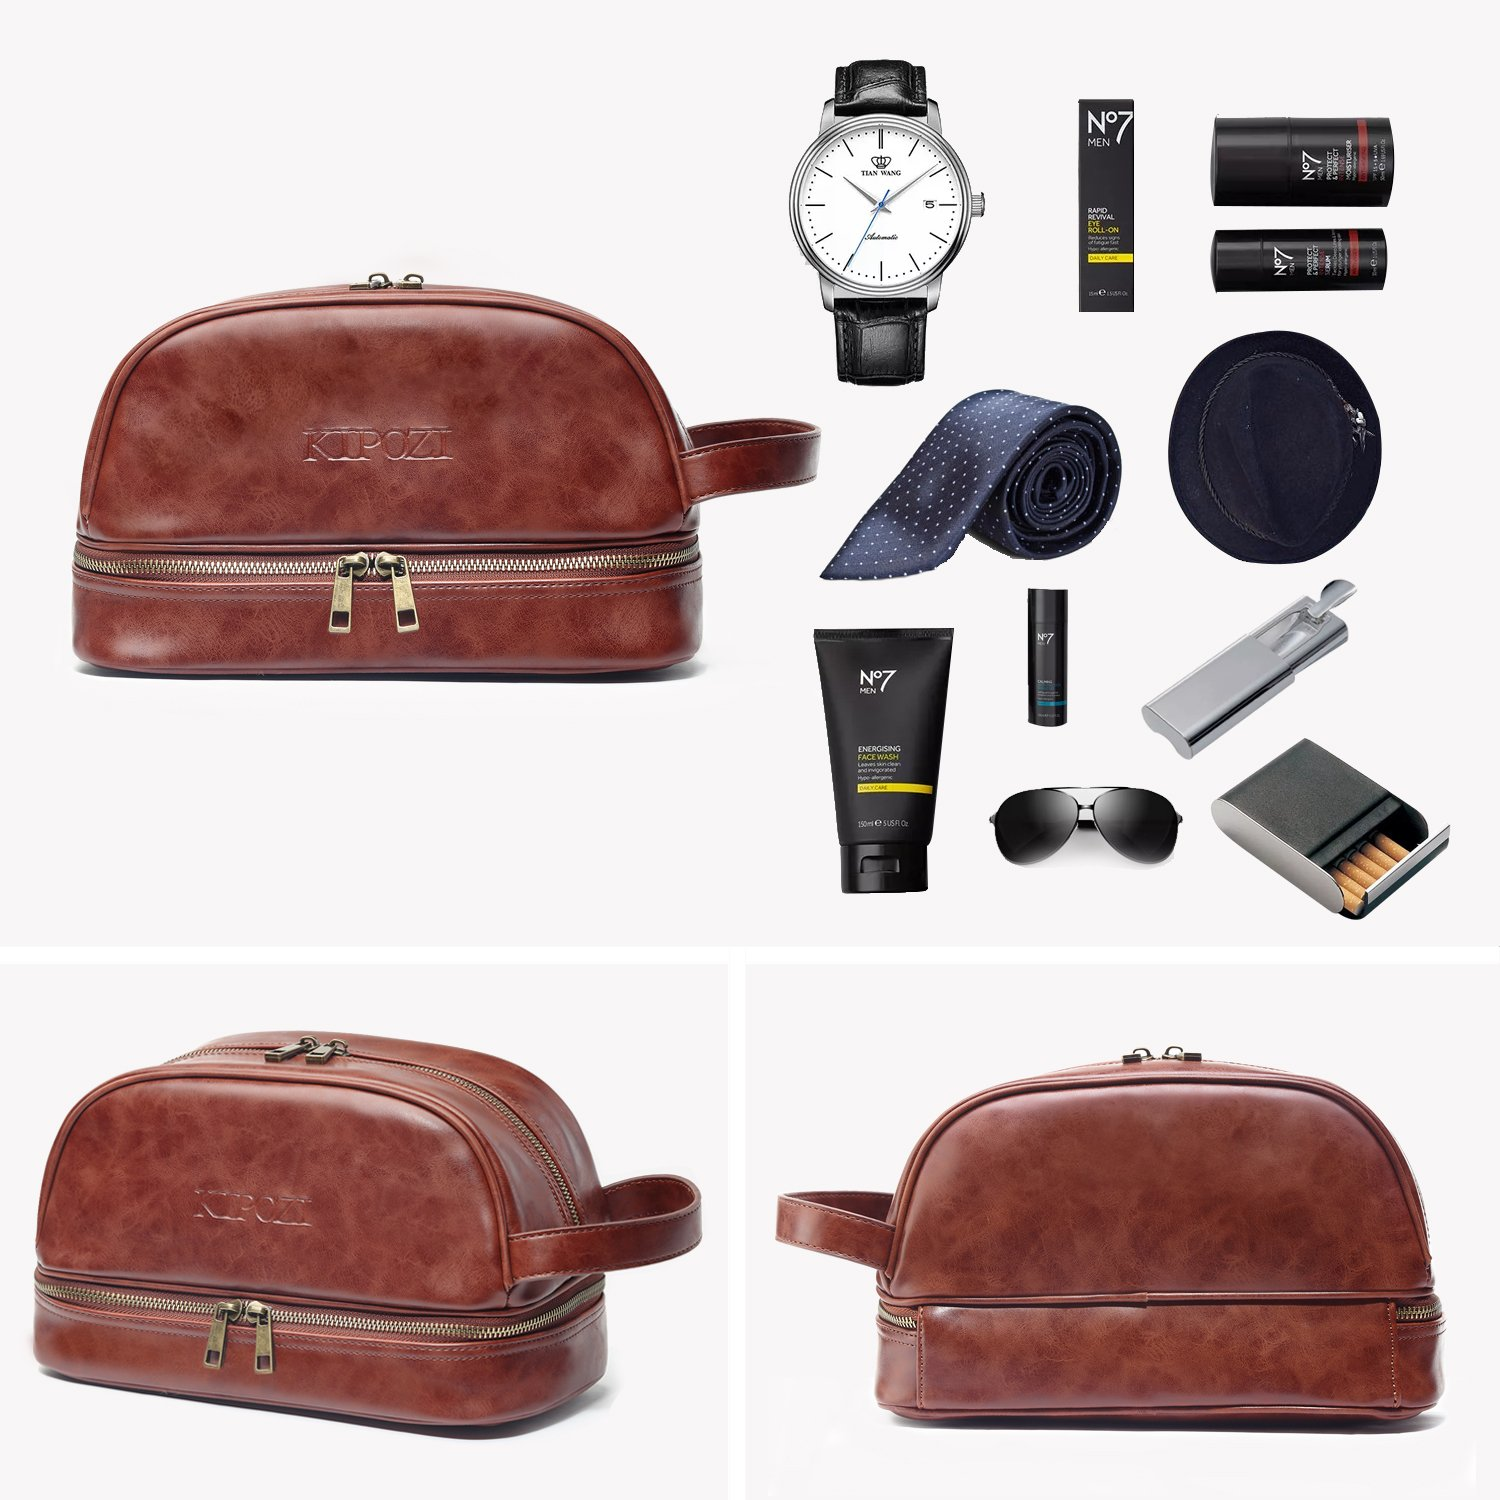 37344575407c KIPOZI Leather Toiletry Bag Men Travel Toiletry Organizer Shaving ...